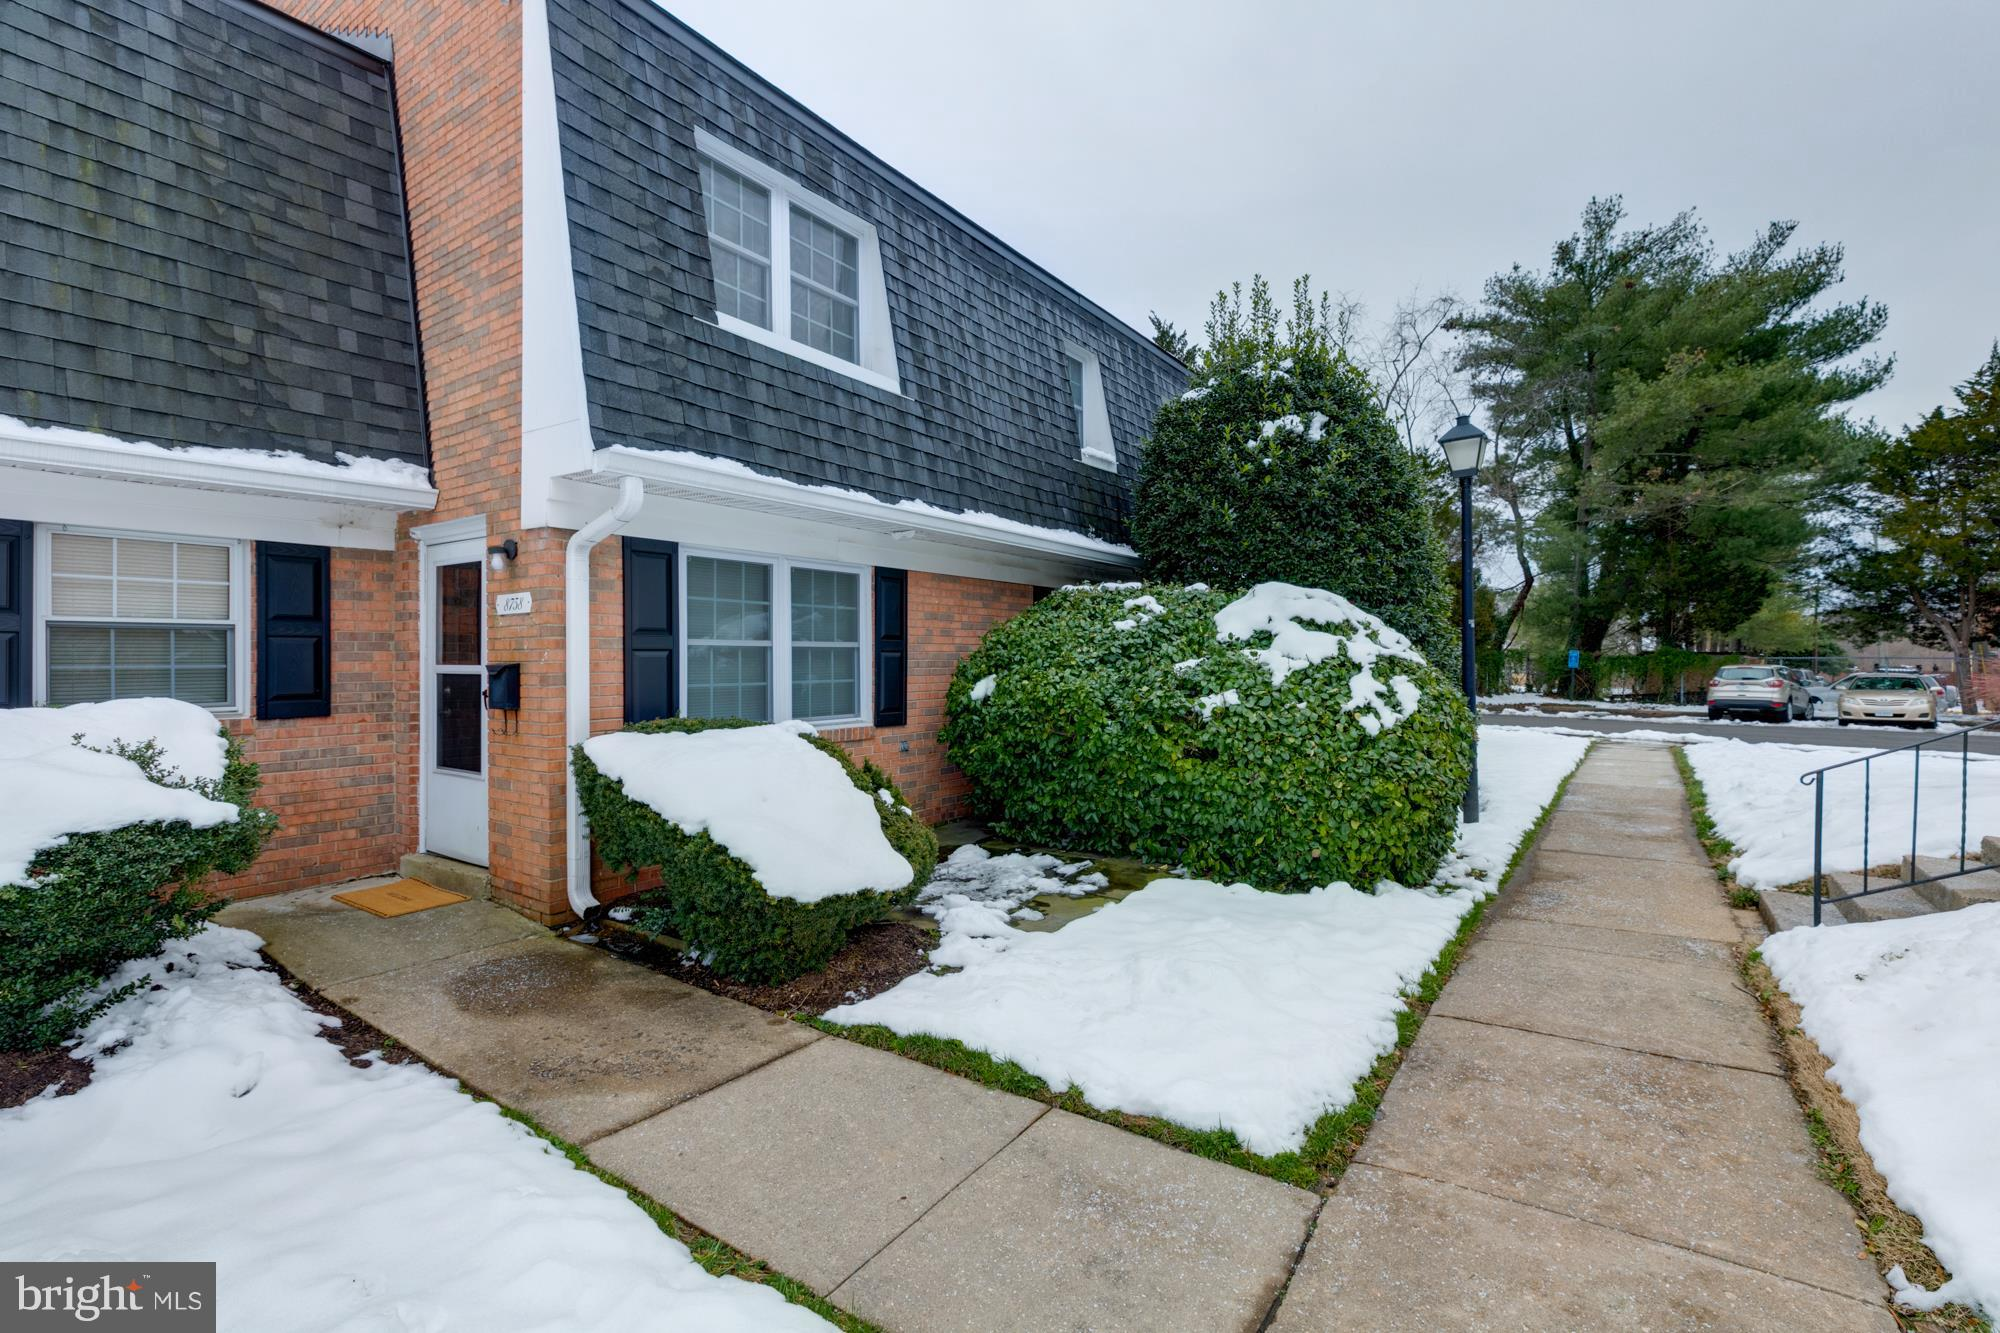 OPEN SUNDAY January 20, 2019--2-4 PM....Beautiful red brick townhouse condo....fresh paint...updated carpet...newer double pane windows...nice neutral miniblinds throughout...LOTS OF updates in kitchen and bath.....full size MAYTAG washer and dryer in unit in separate laundry room...private patio...HMS Home Warranty provided to new buyer(s)...reasonable condo fee includes water/sewer, exterior maintenance, trash service, parking, pool, tot lot, basketball court, more...A WOW!!!